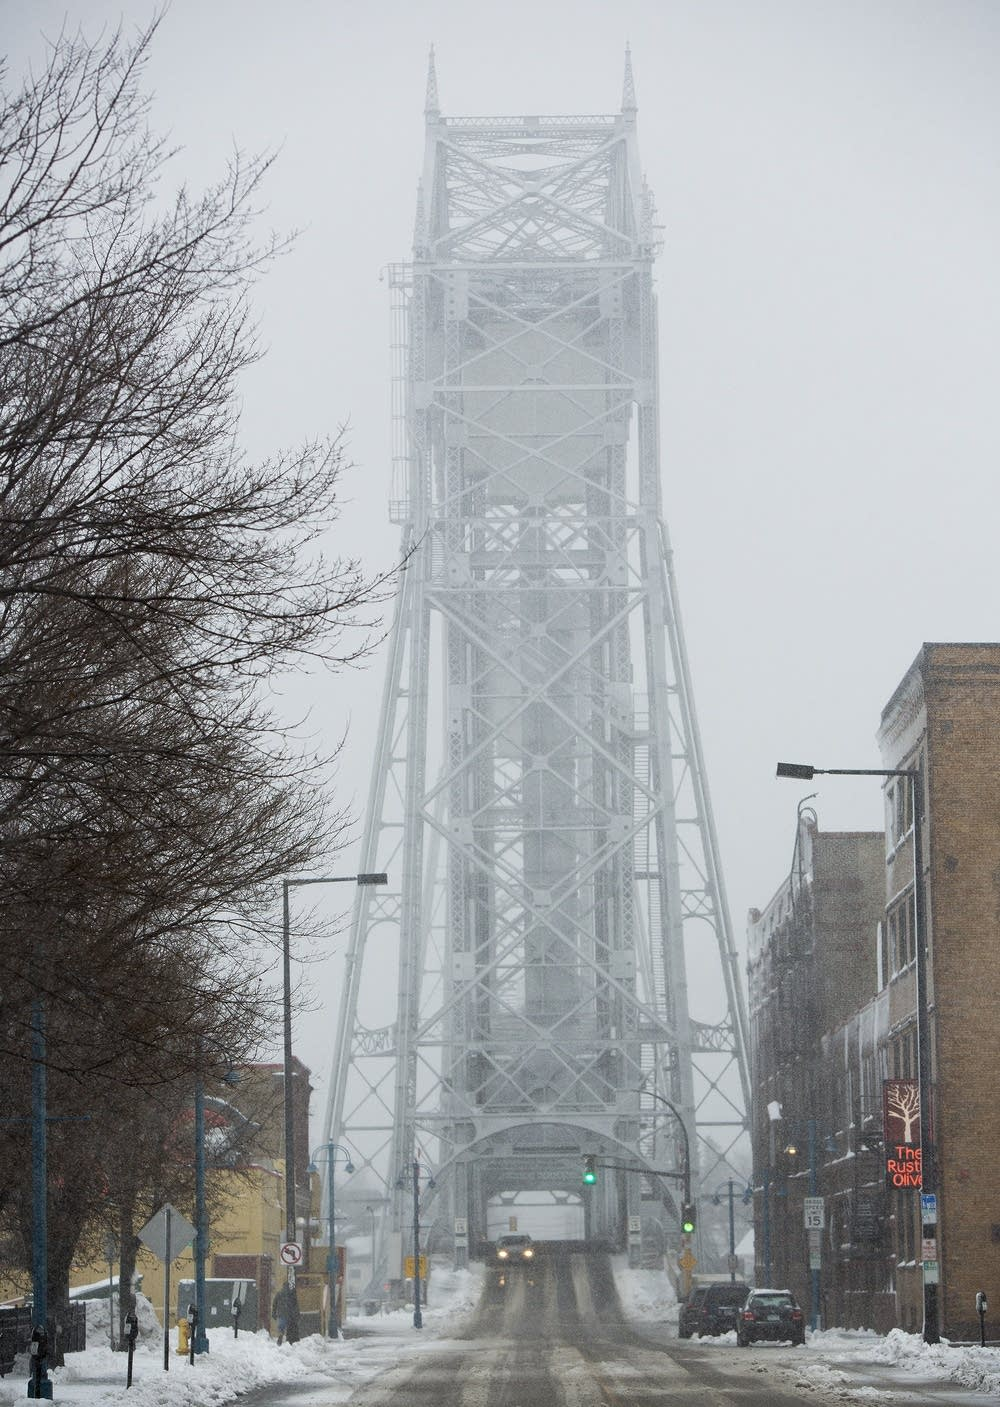 Blowing winds obscure the view of the lift bridge.